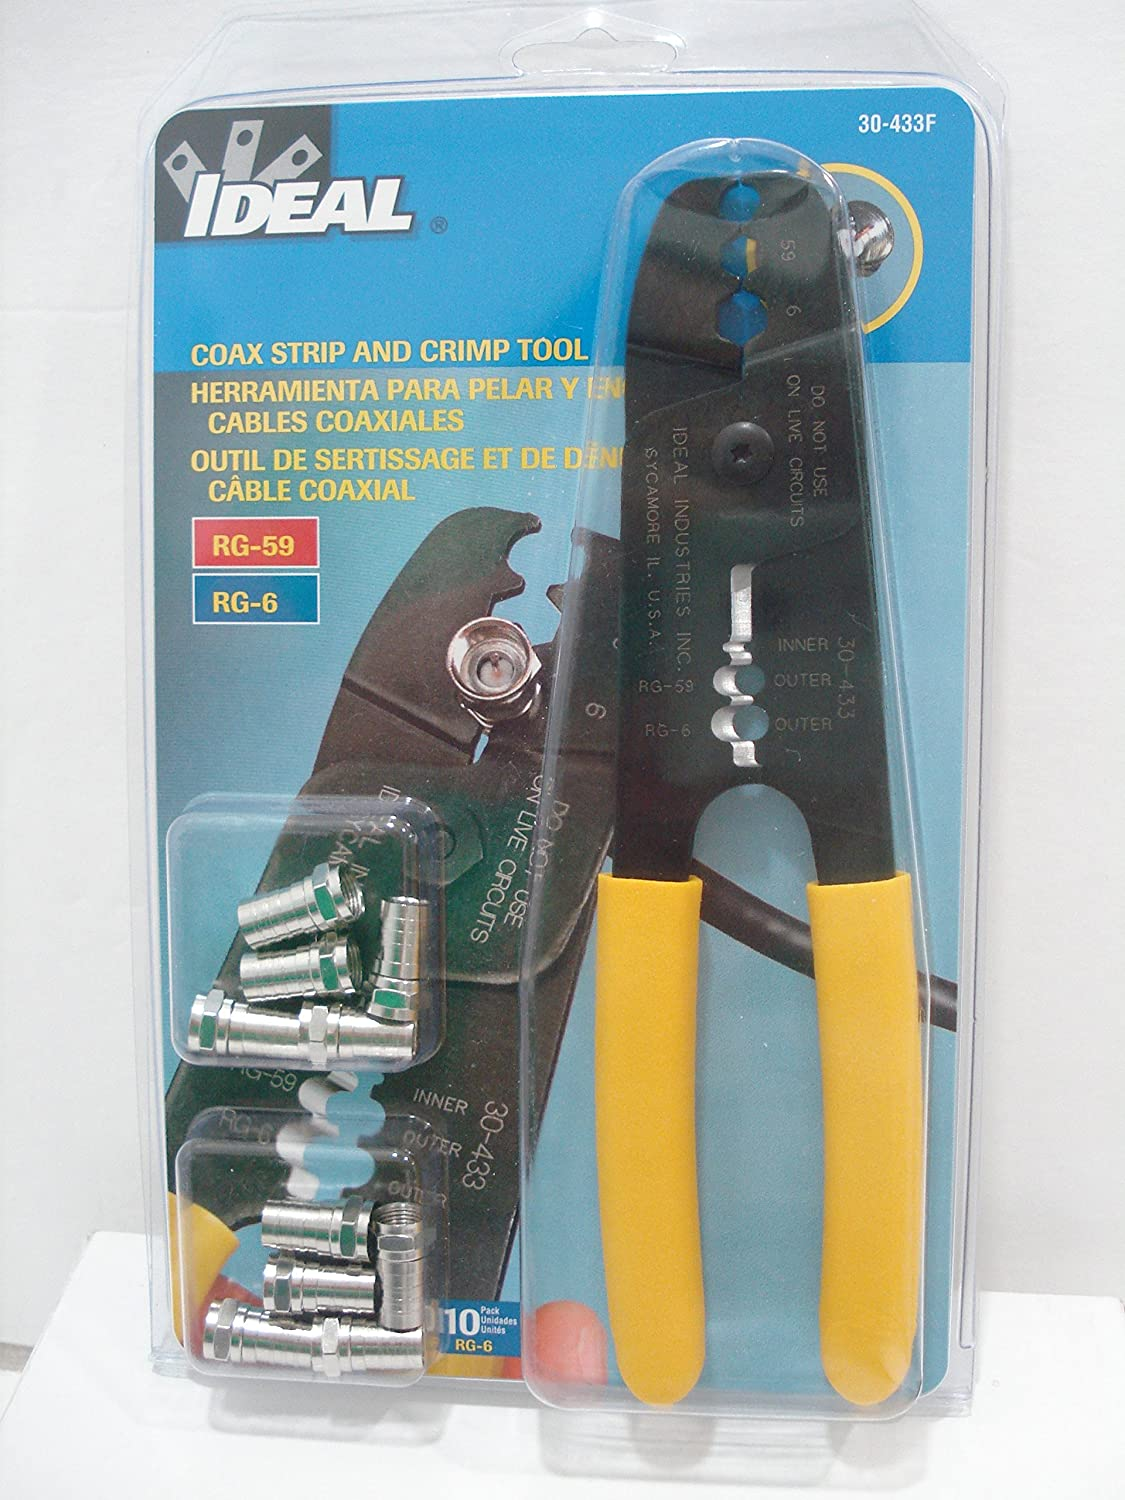 Ideal 30-433F Coax Strip and Crimp Tool with ten RG-6 F-Connectors: Crimpers: Amazon.com: Industrial & Scientific